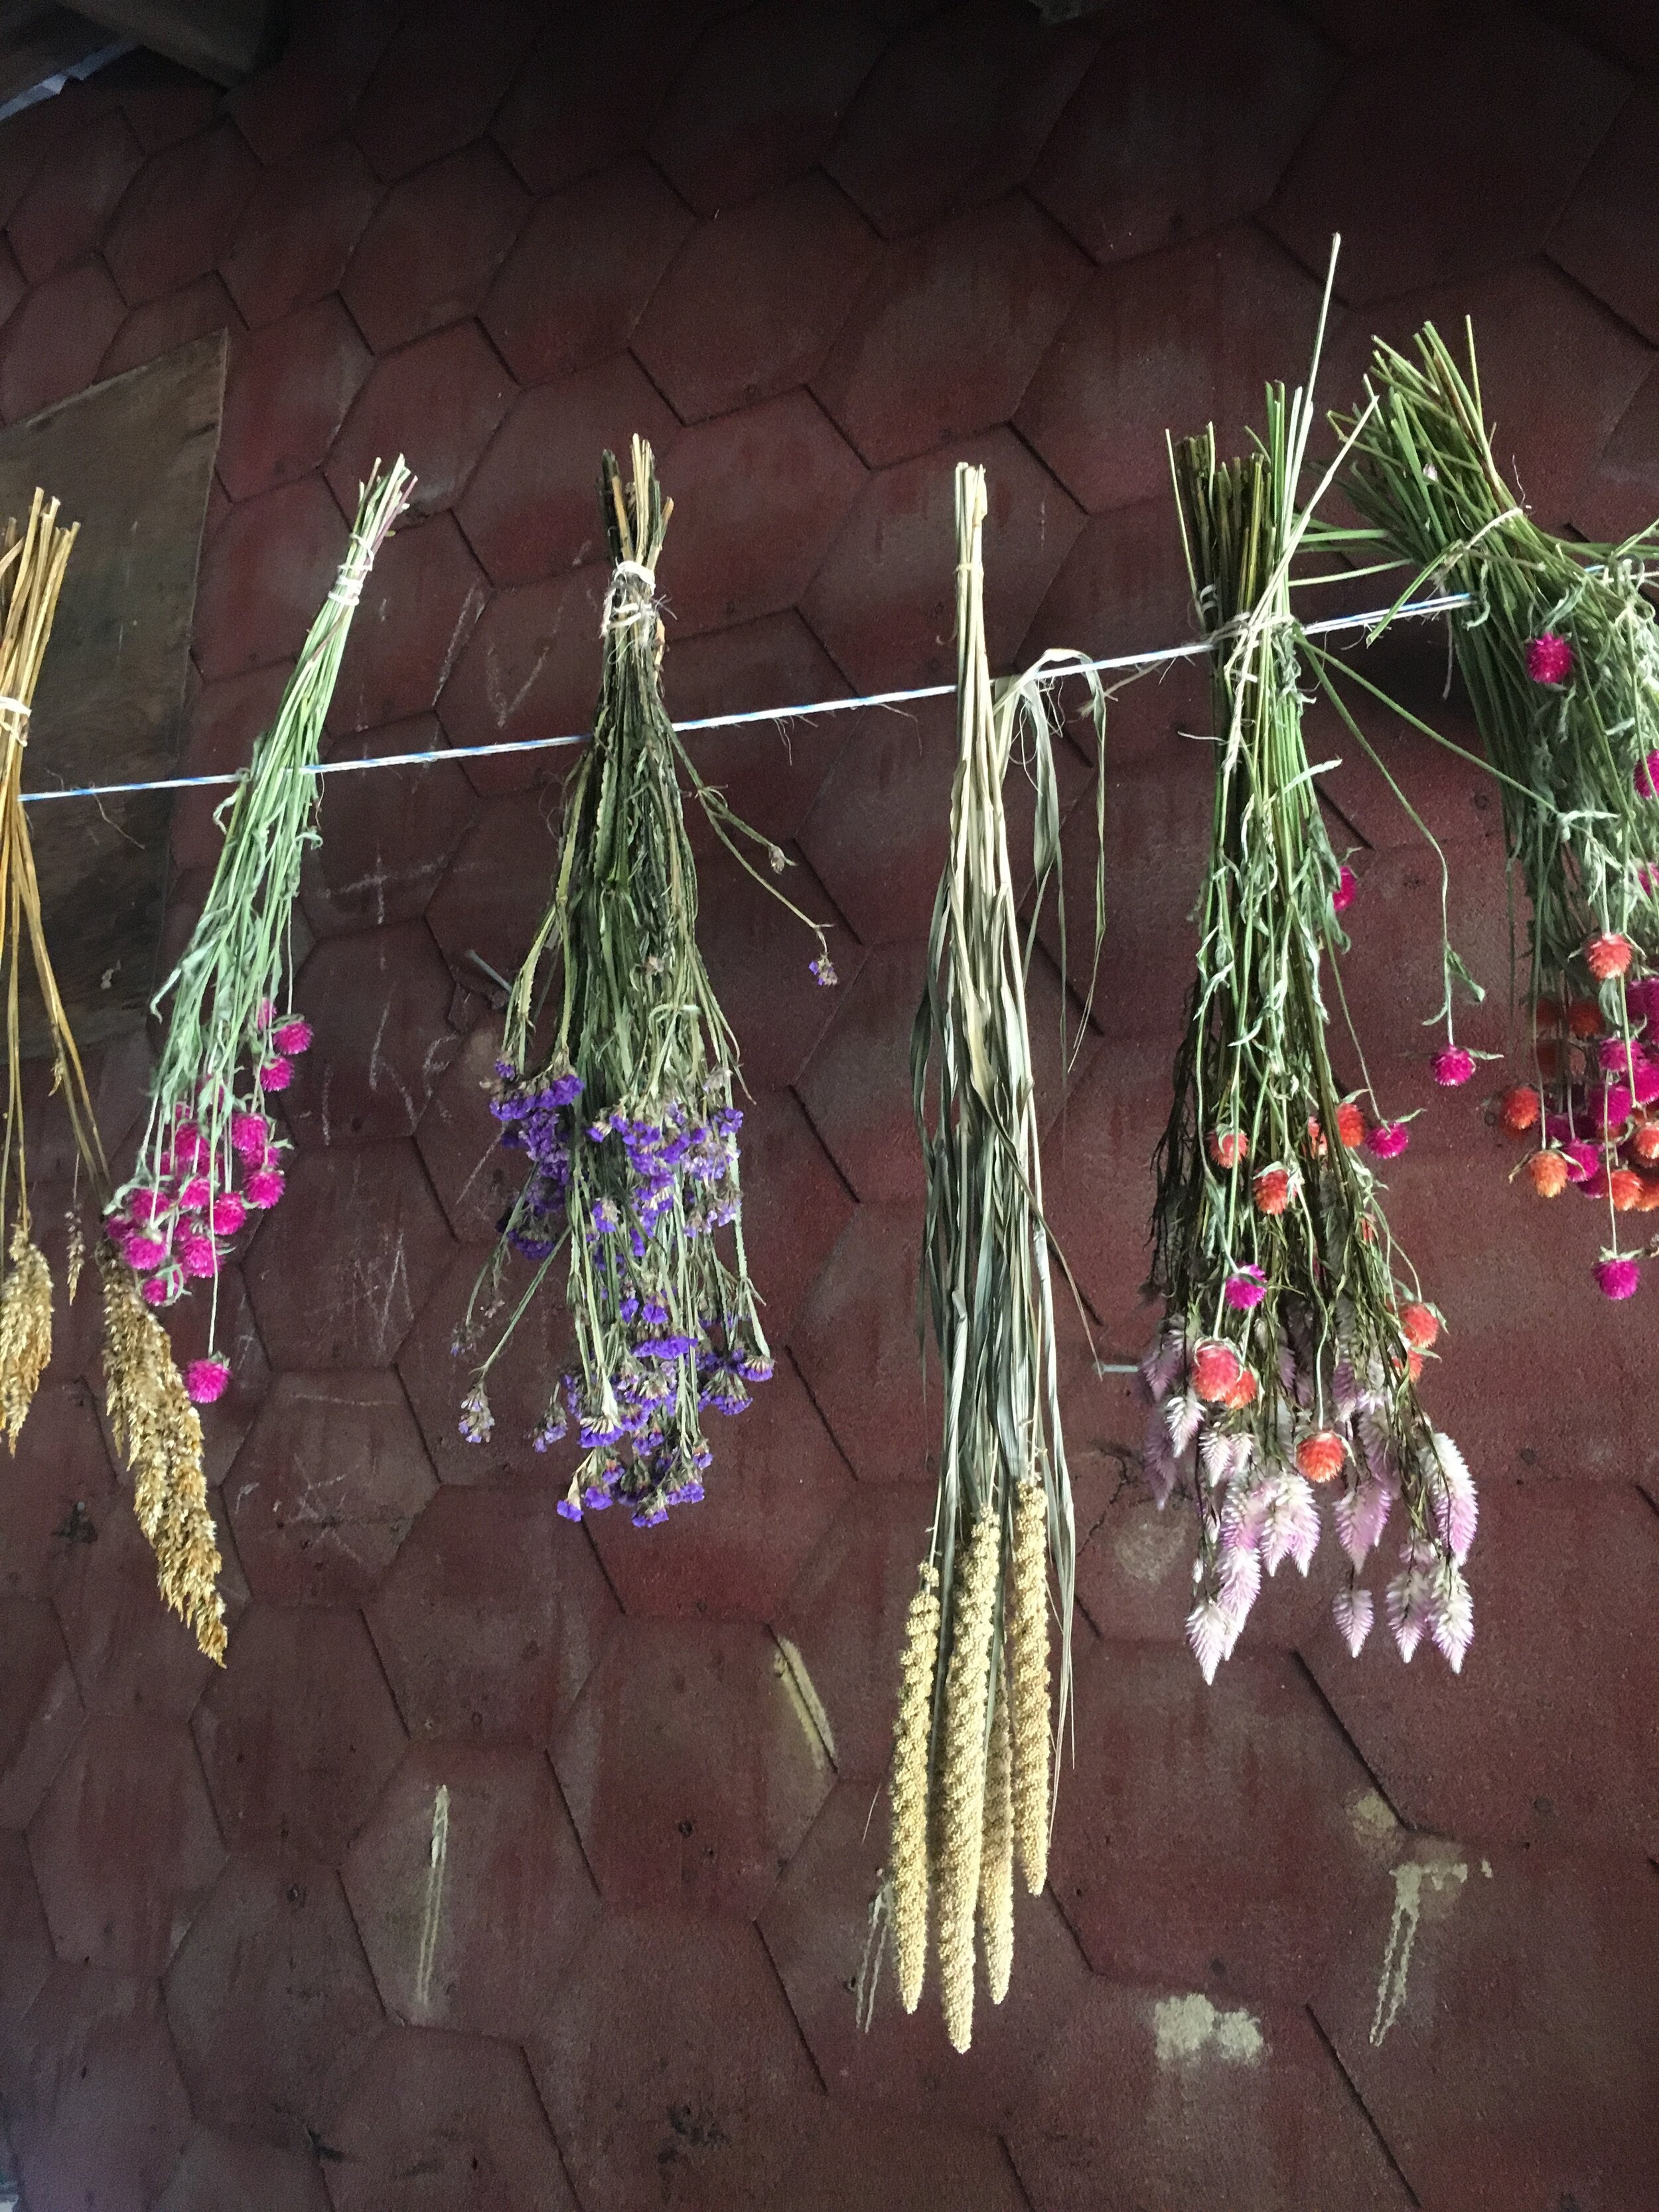 We dried a lot of flowers this year, and with the slower days, we've had time to begin work on Autumn wreaths! We'll be bringing a few to market this weekend, and will have more available in the weeks to come. We're excited to share them with you!